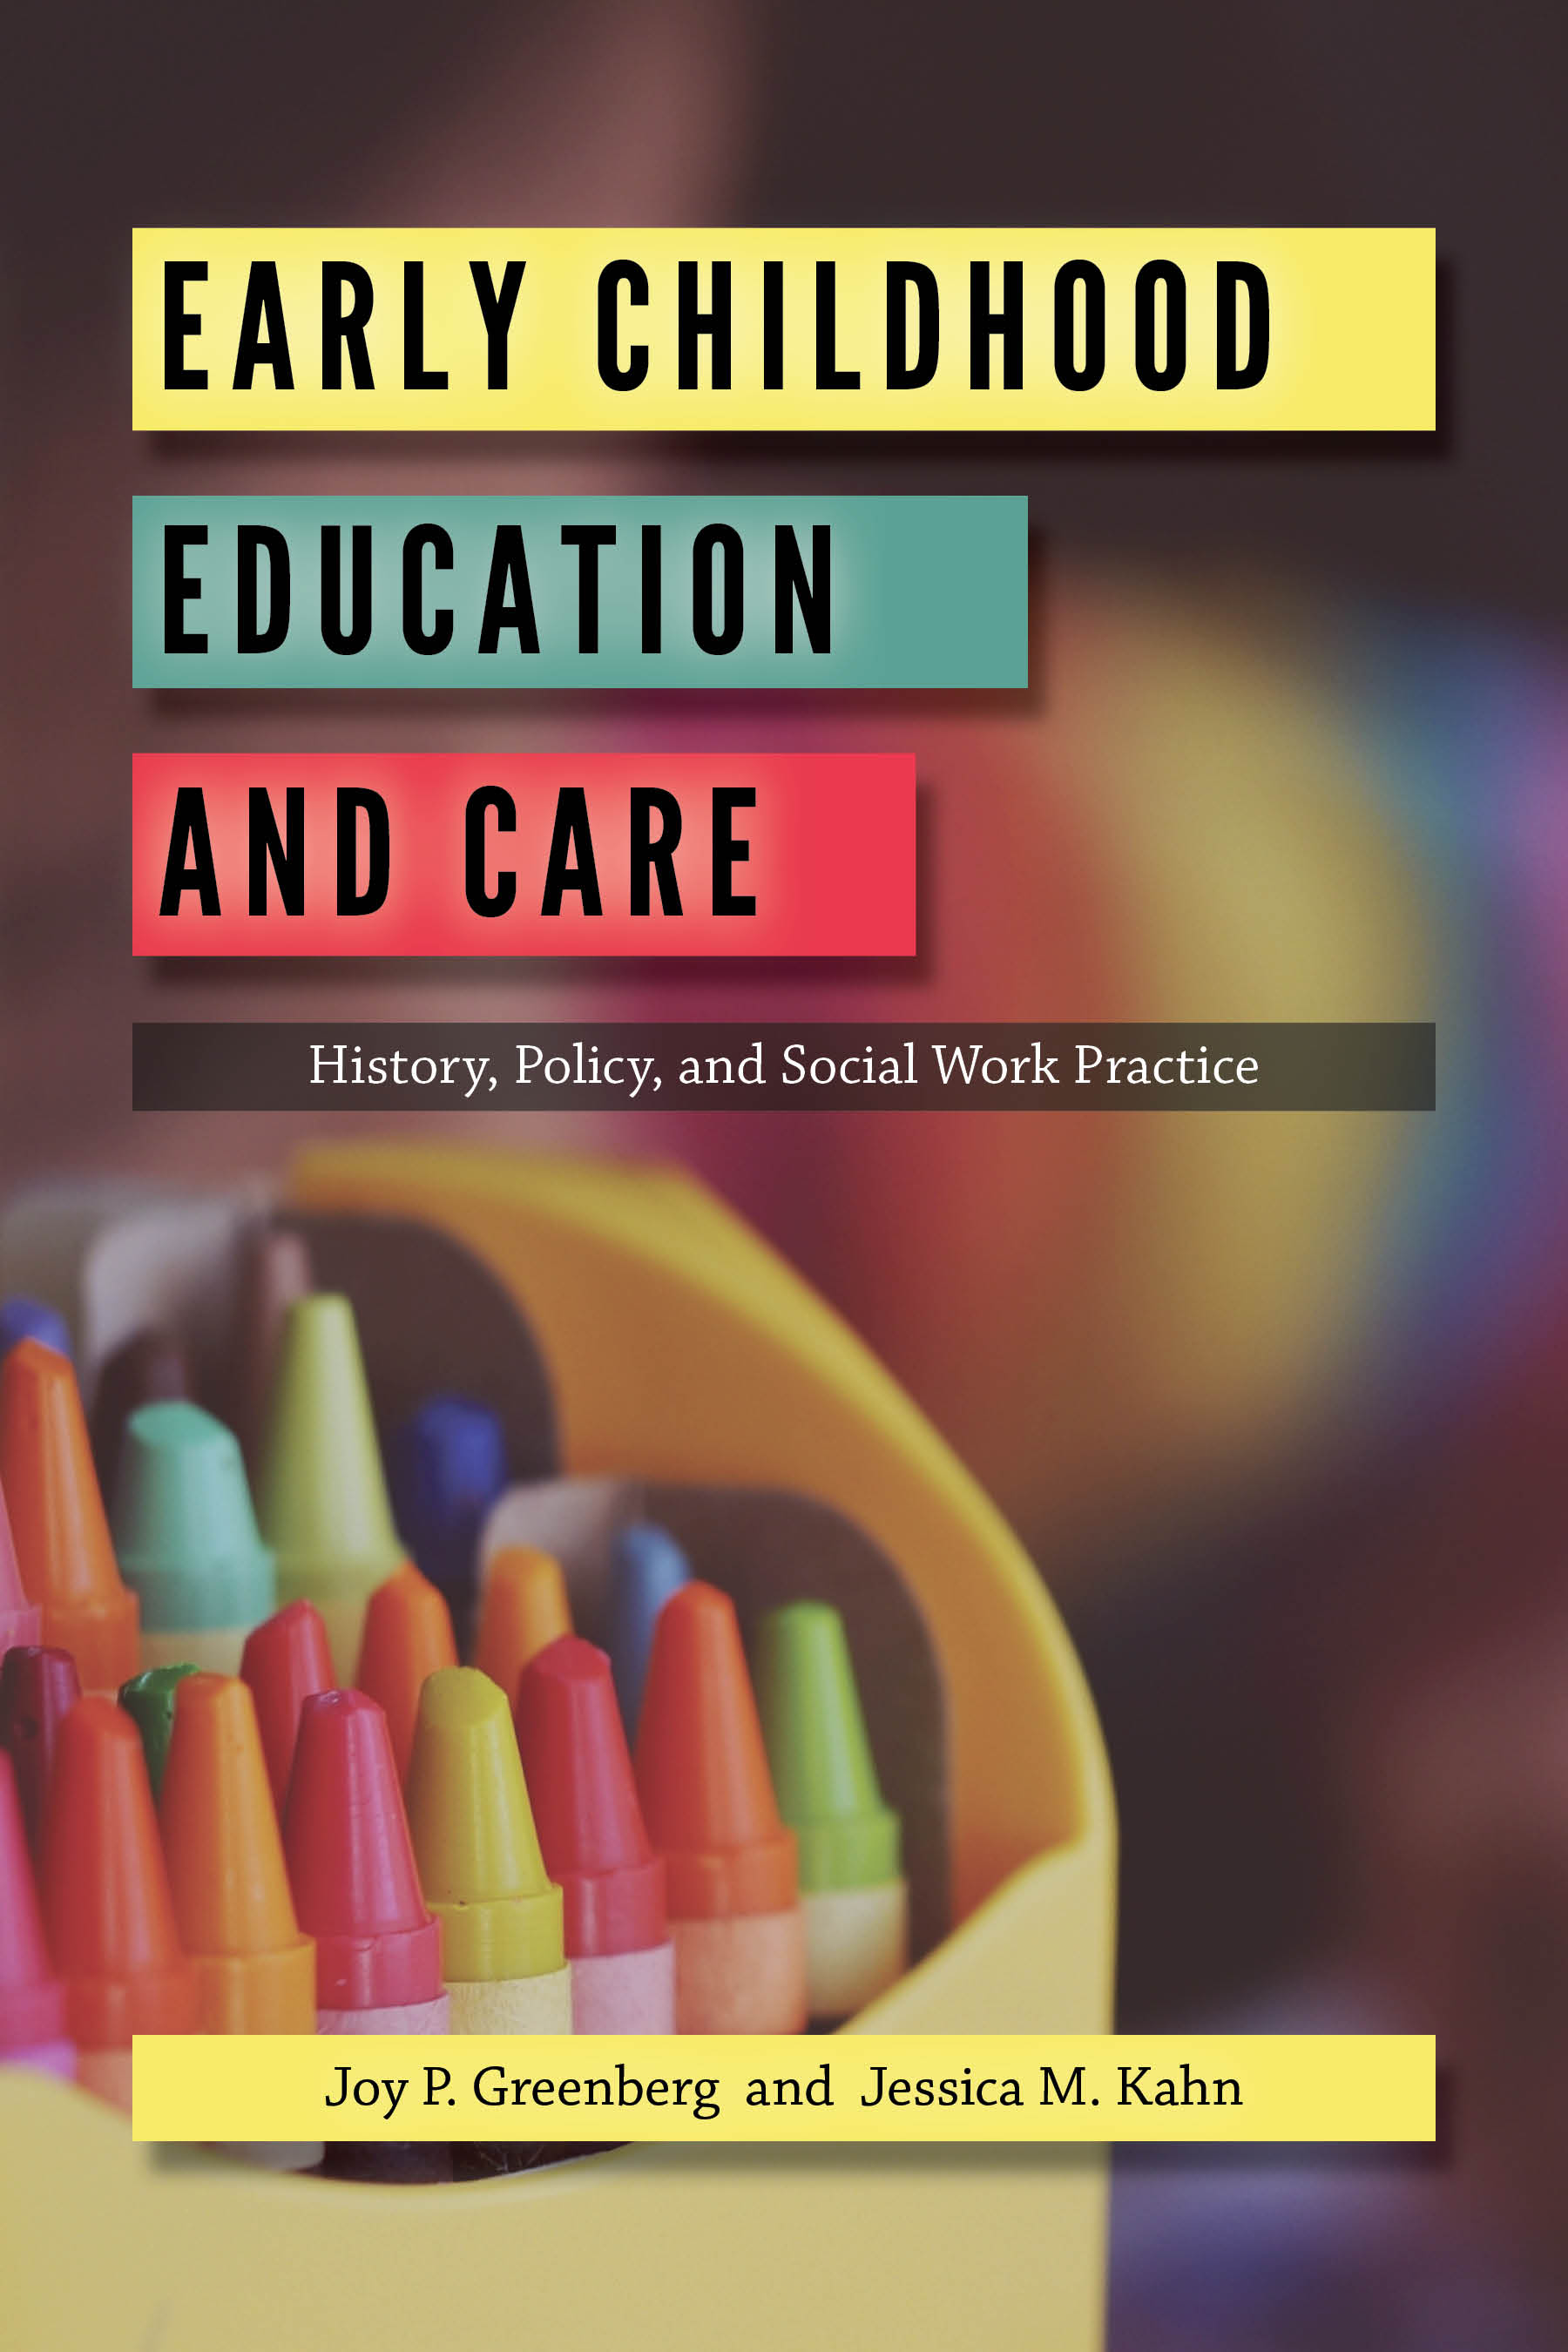 Early Childhood Education and Care_Cover